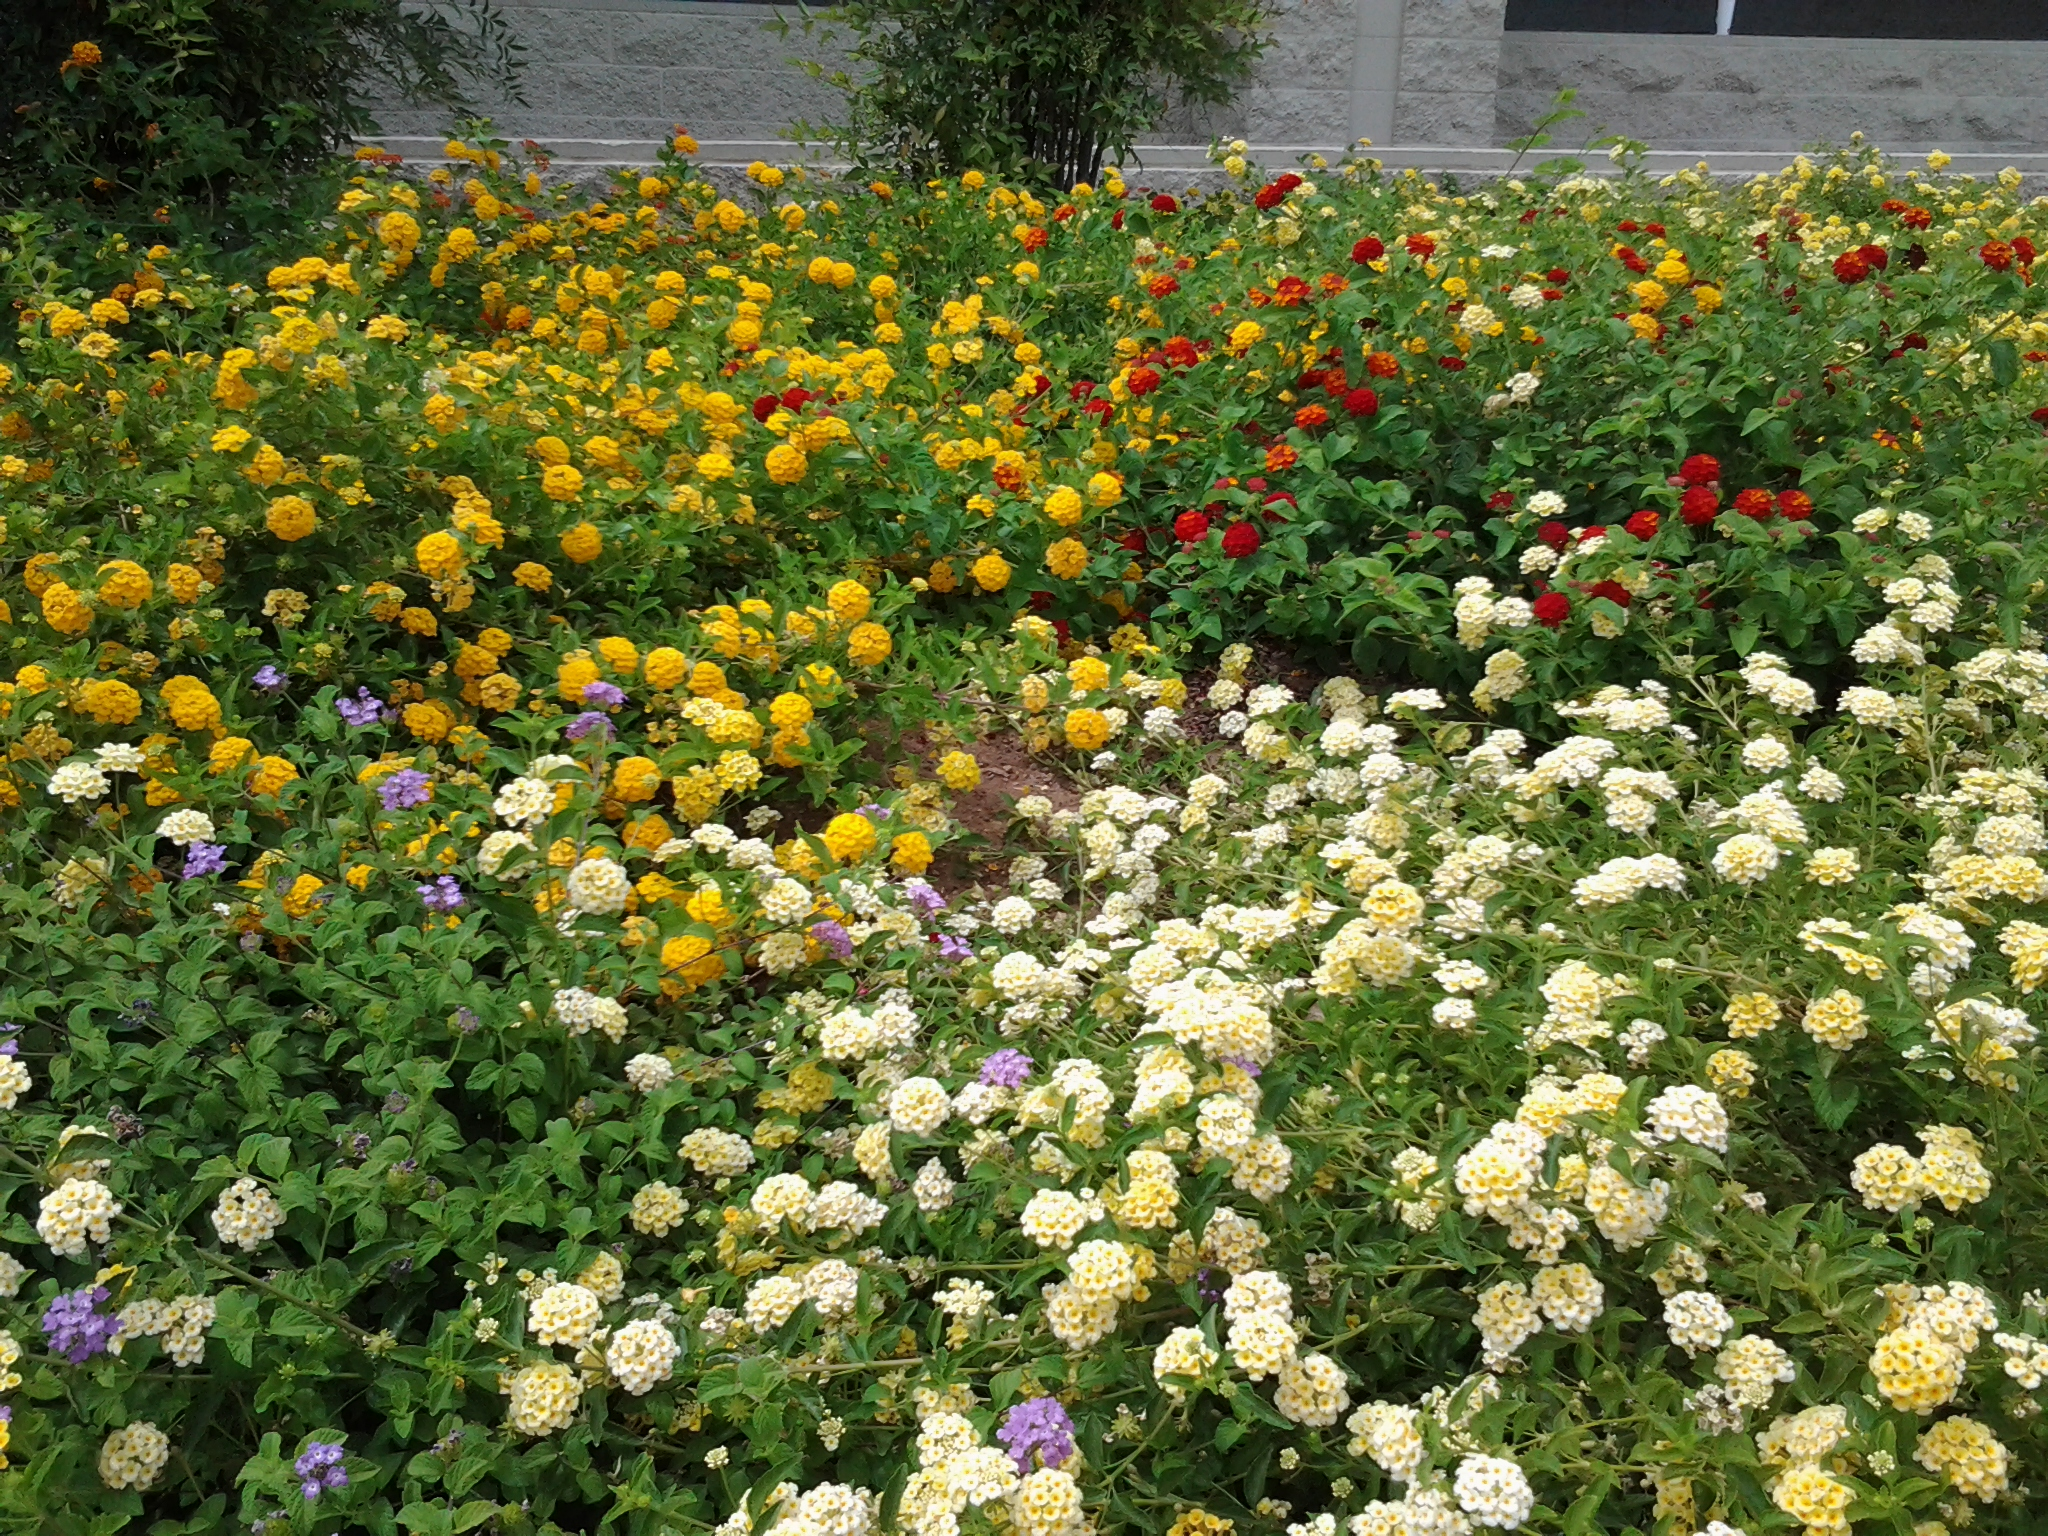 Lantana is the best drought tolerant plant red white purple best drought tolerant plants lantana varieties mightylinksfo Image collections